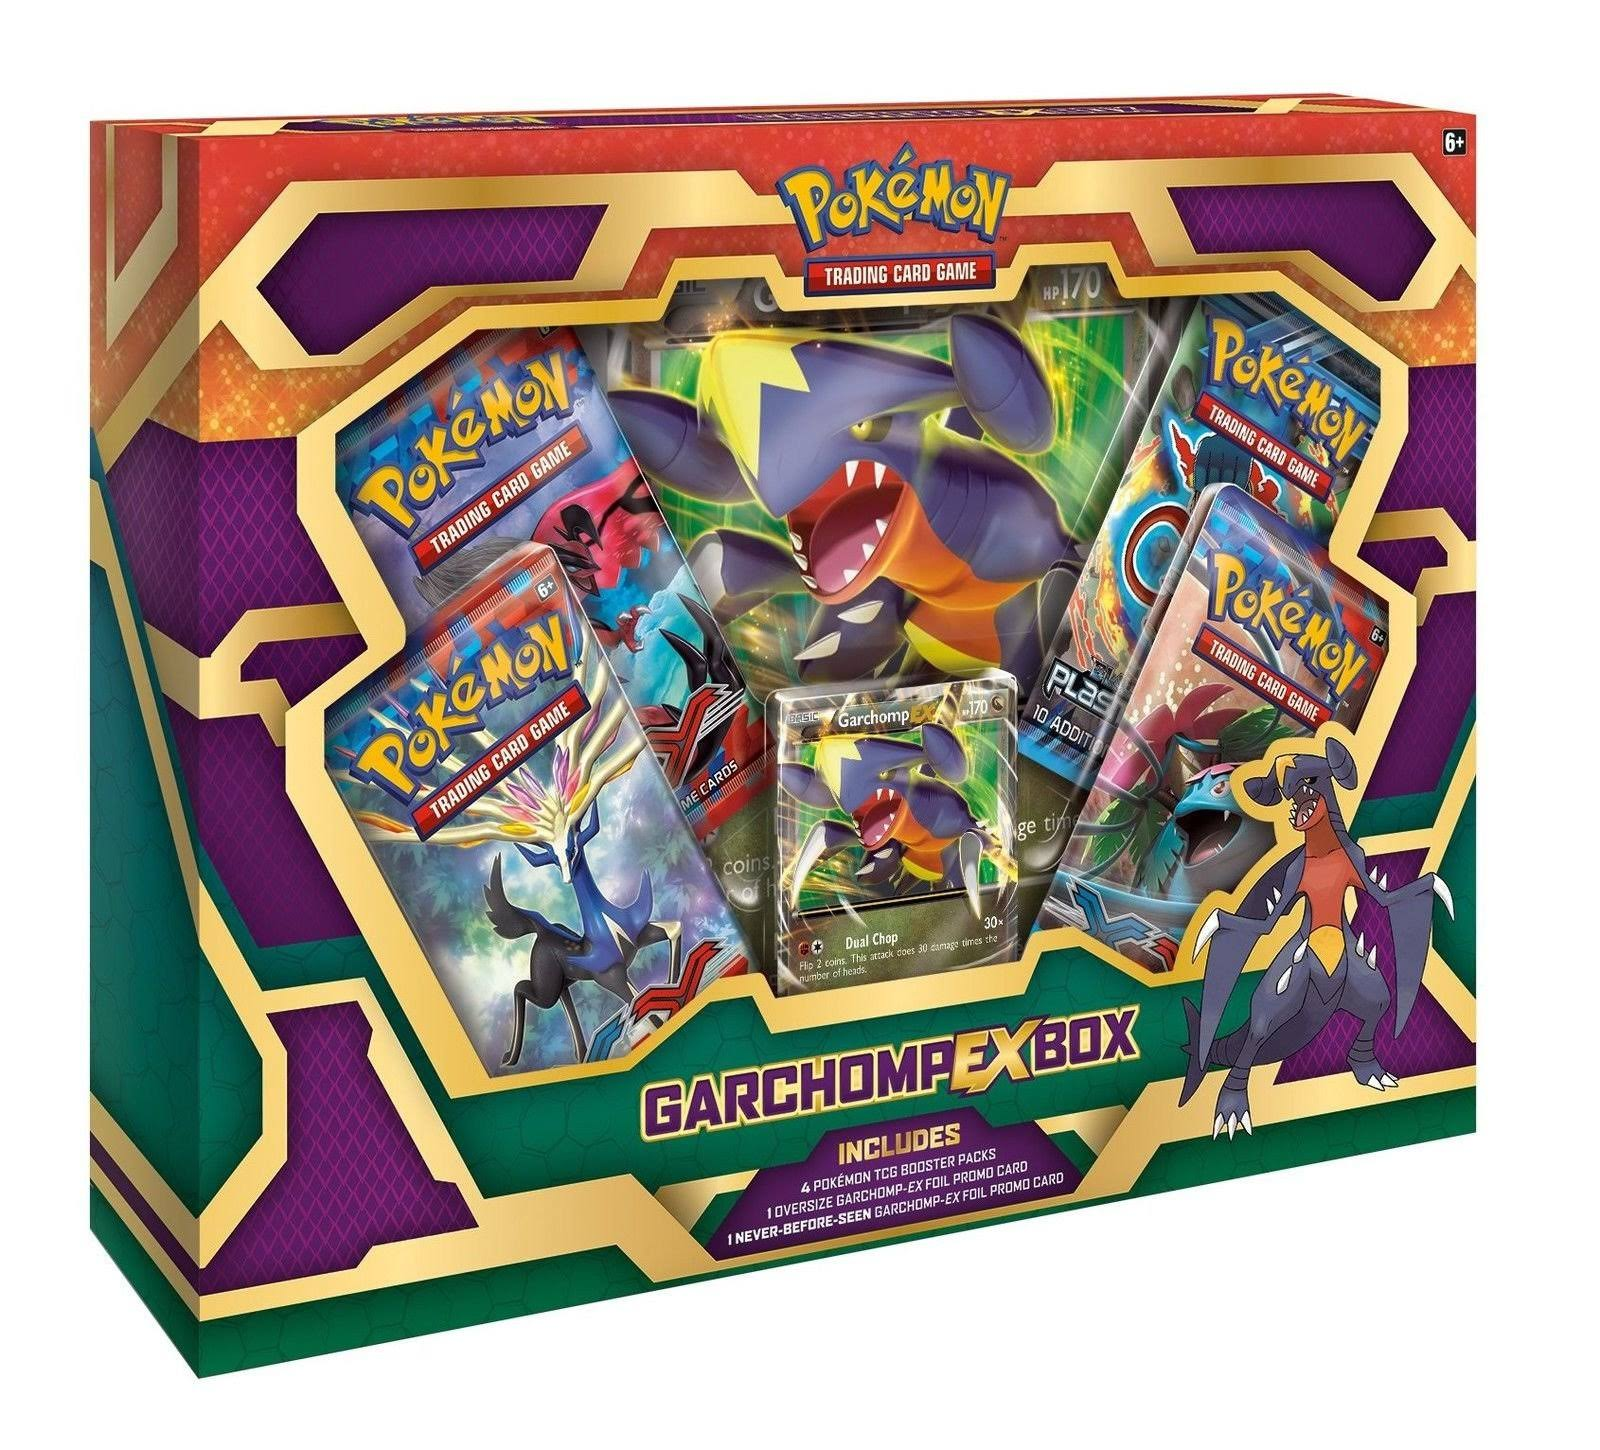 Pokemon Trading Card Game - Garchomp-EX Box